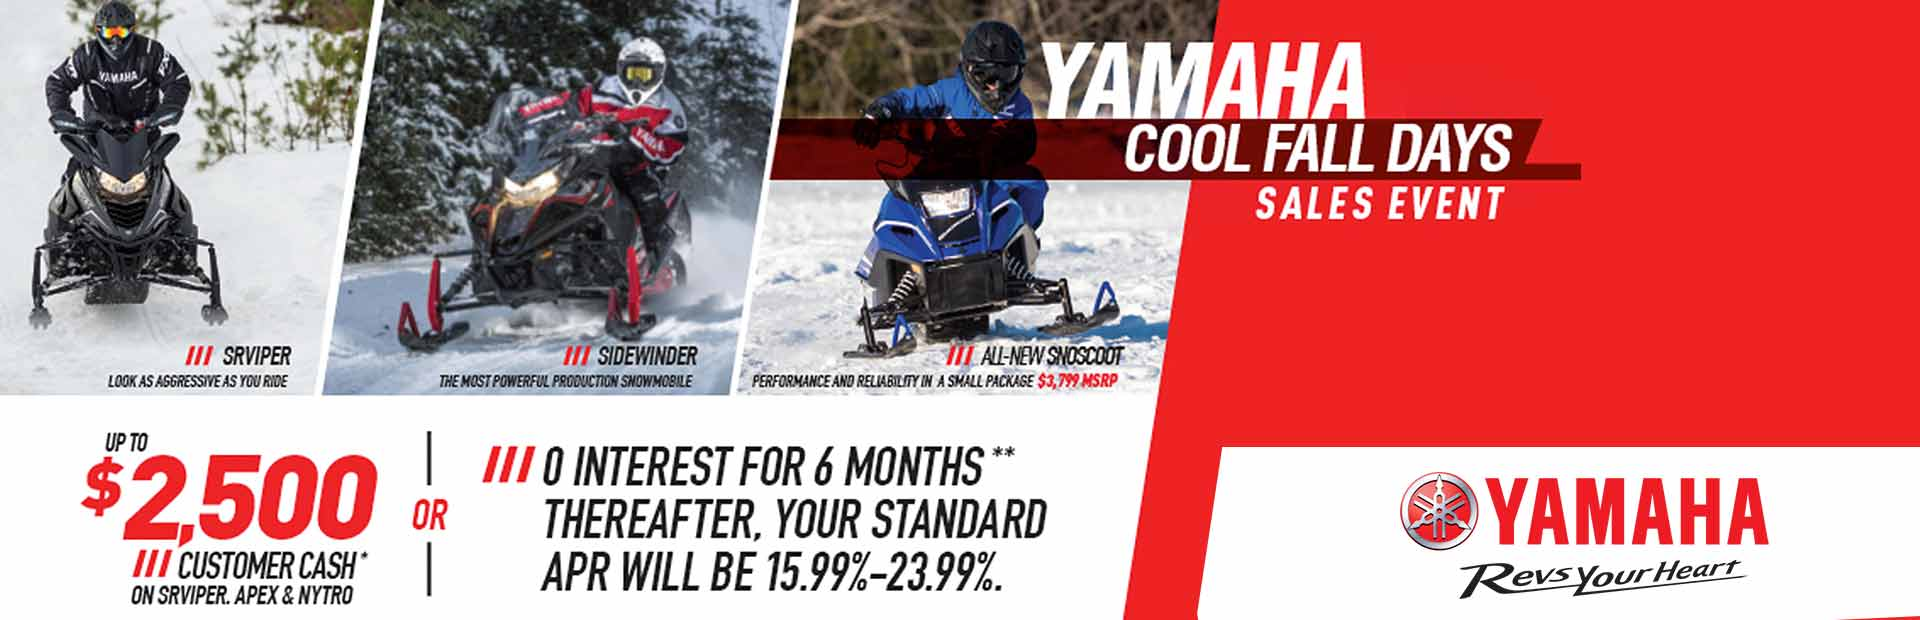 Yamaha: Yamaha Cool Fall Days Sales Event